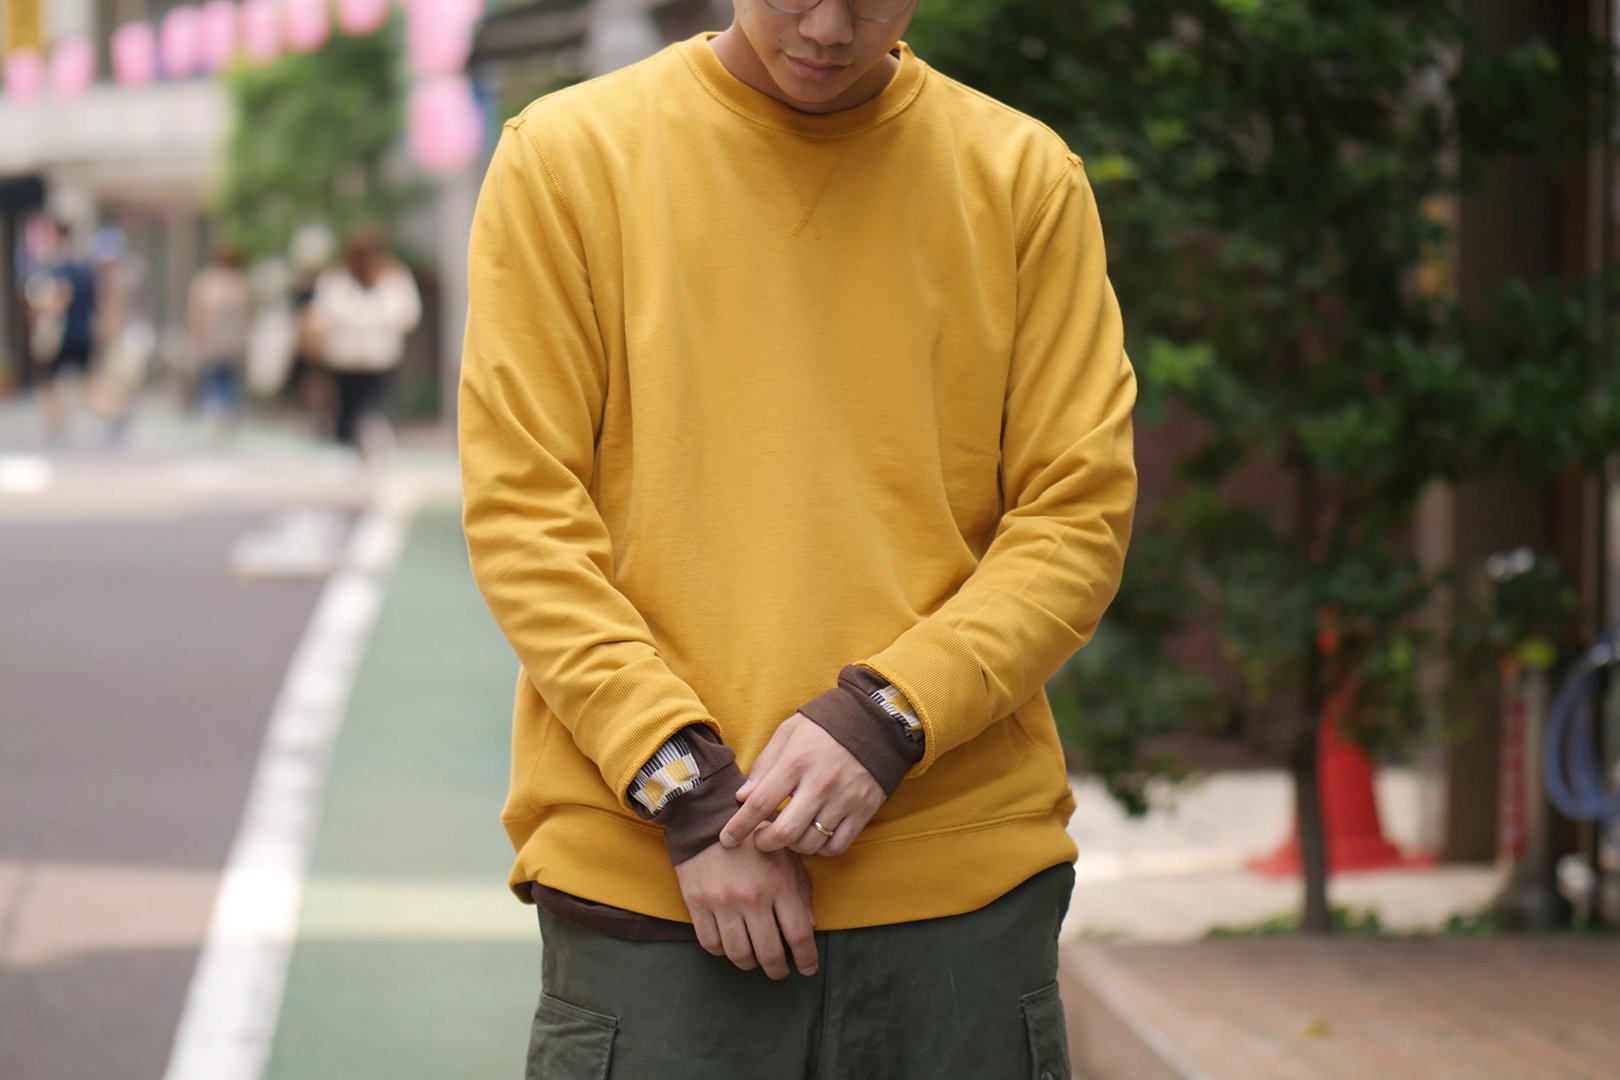 <img class='new_mark_img1' src='https://img.shop-pro.jp/img/new/icons5.gif' style='border:none;display:inline;margin:0px;padding:0px;width:auto;' />The Inoue Brothers / Crew Neck Sweat